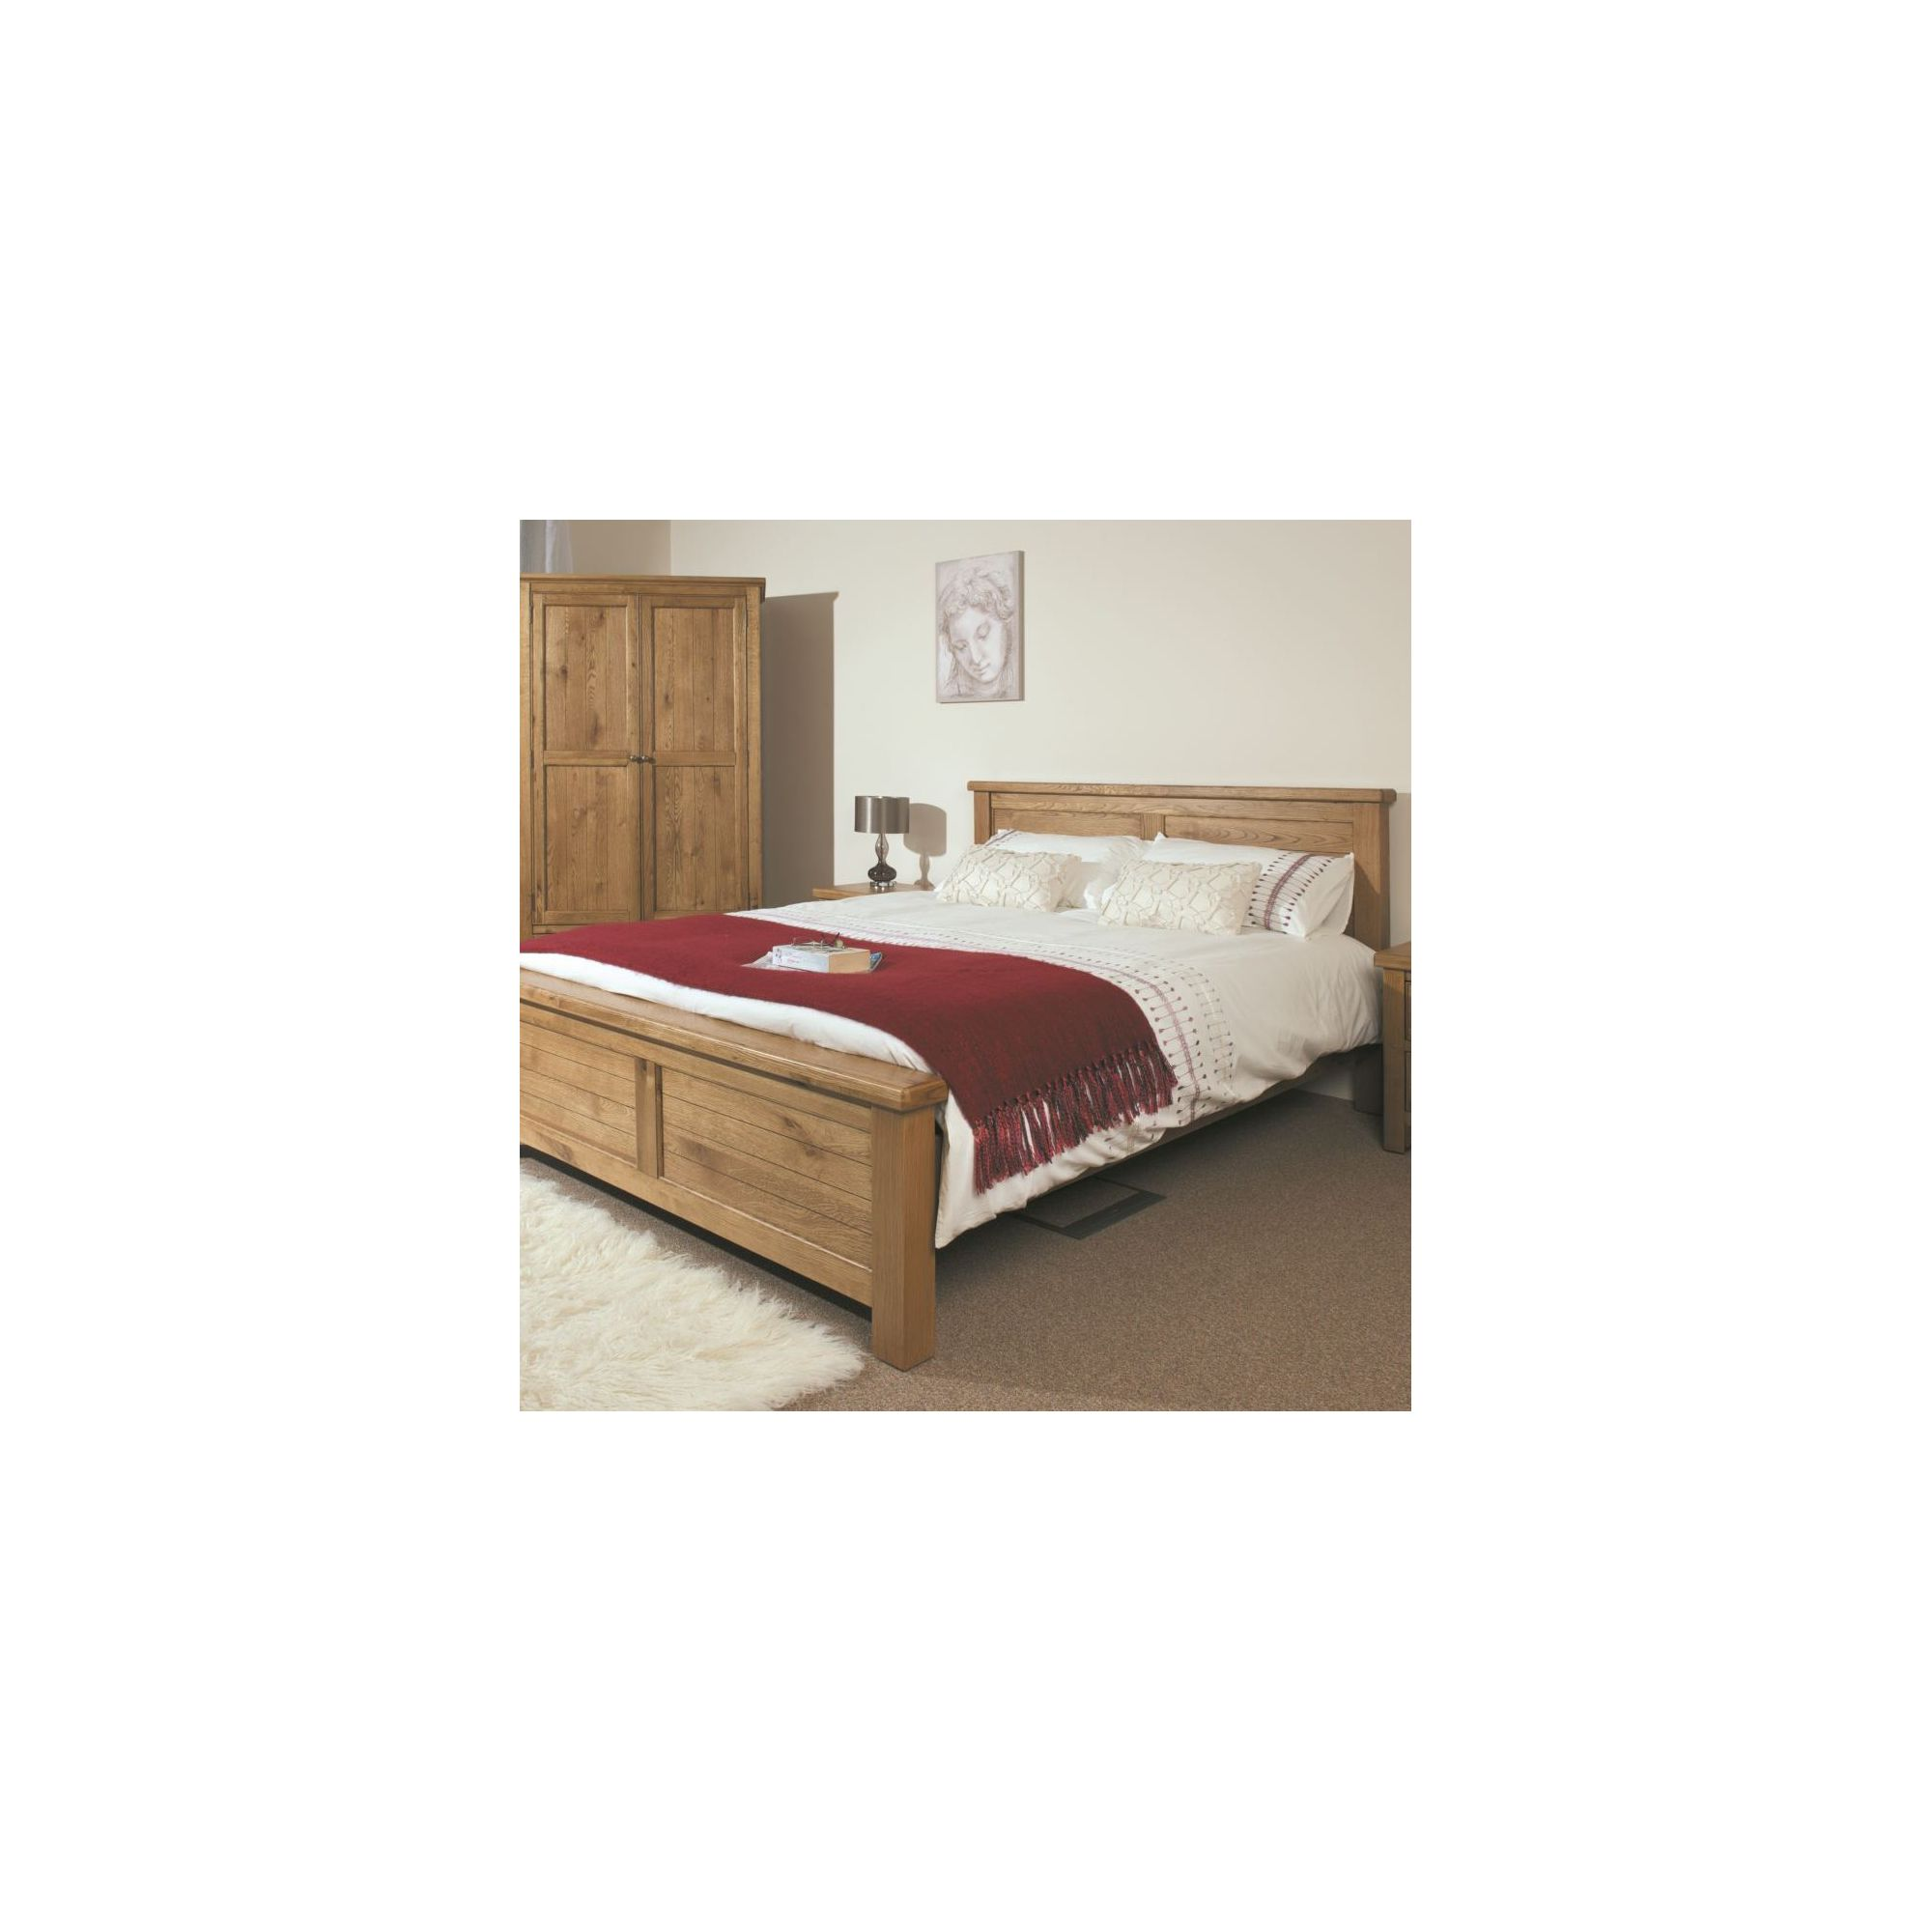 Kelburn Furniture Marino Rustic Oak Bed - Double at Tescos Direct